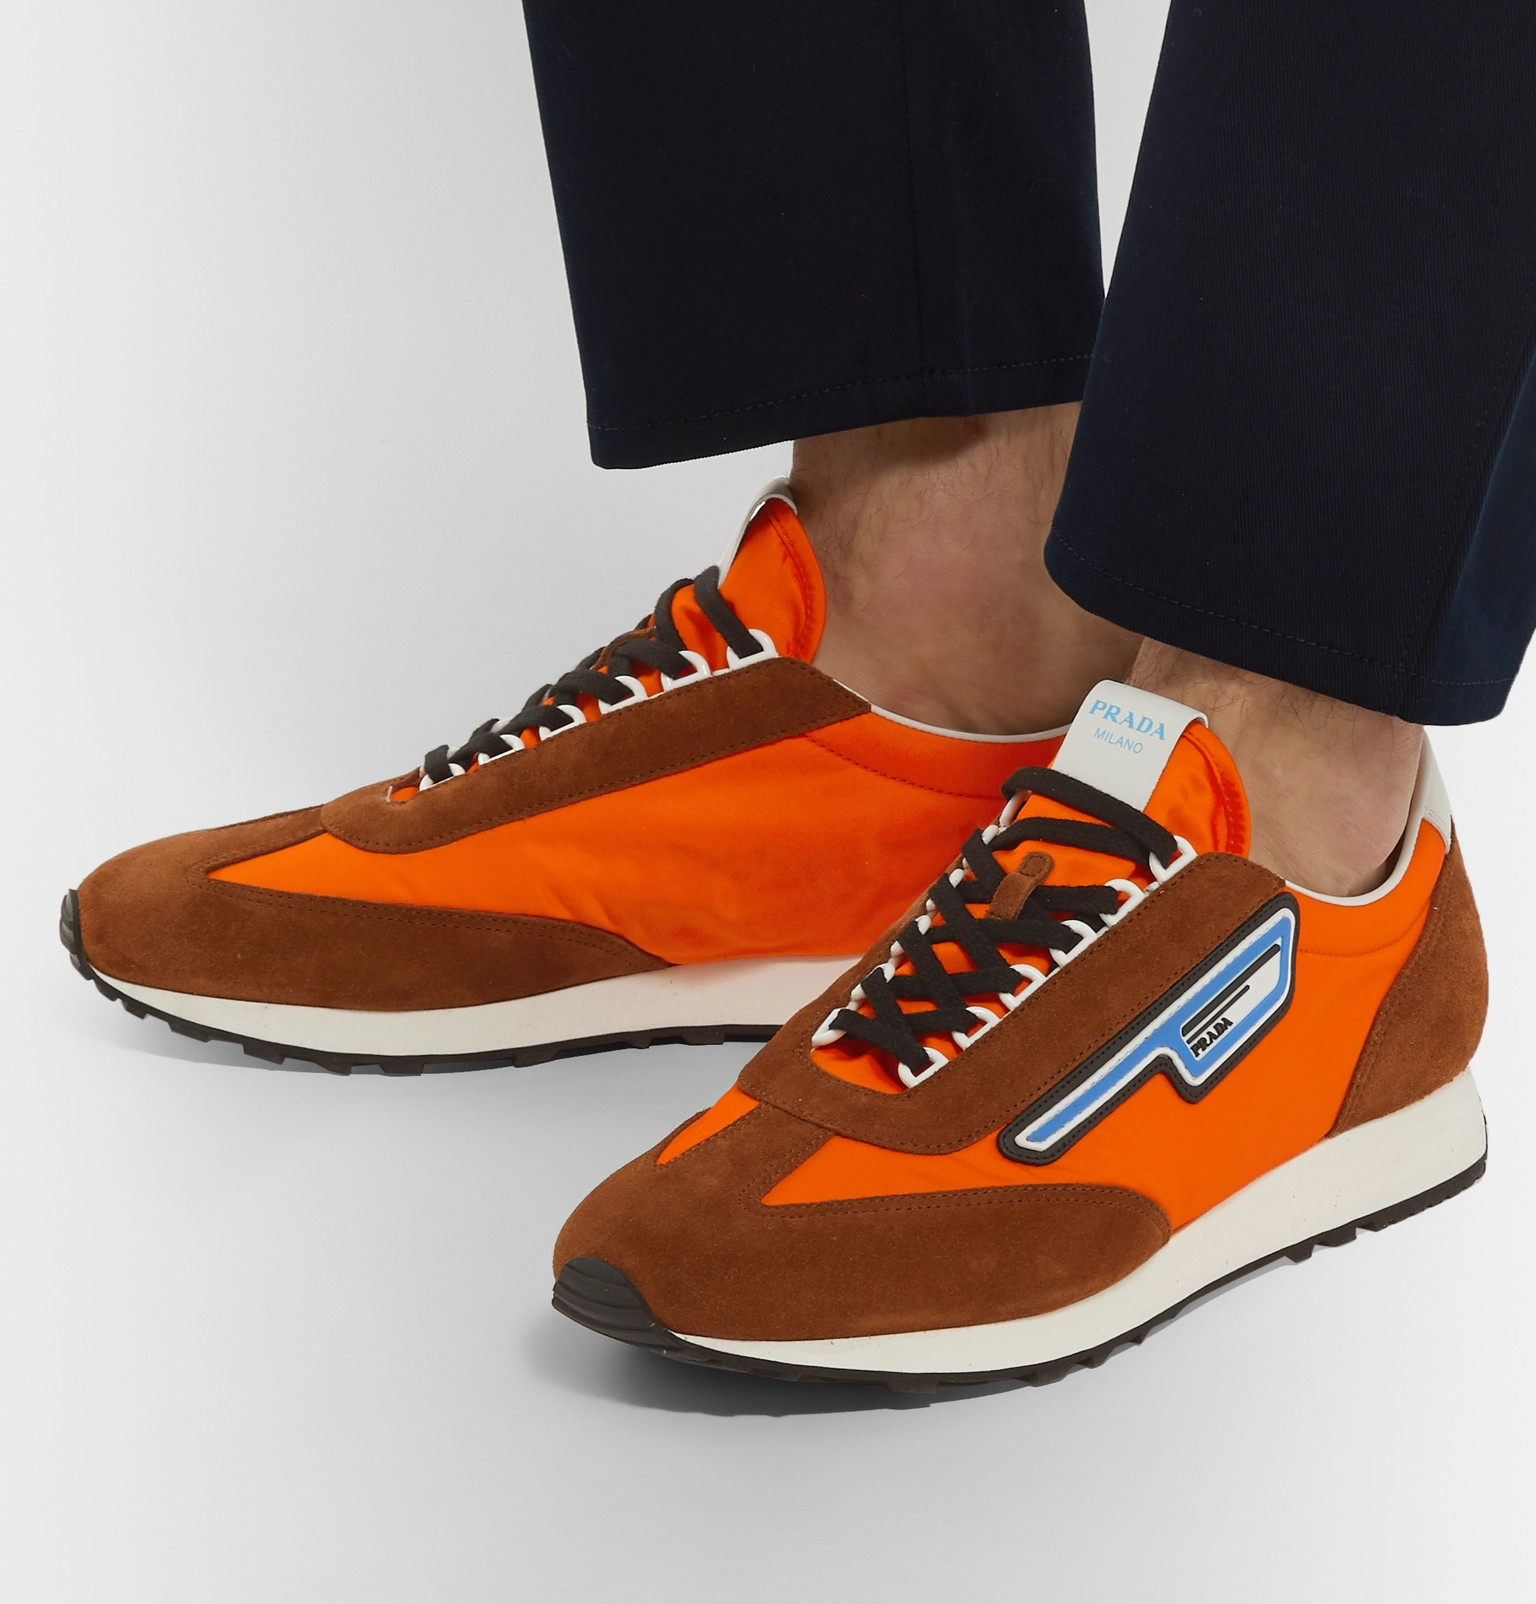 Leather-Trimmed Nylon Sneakers